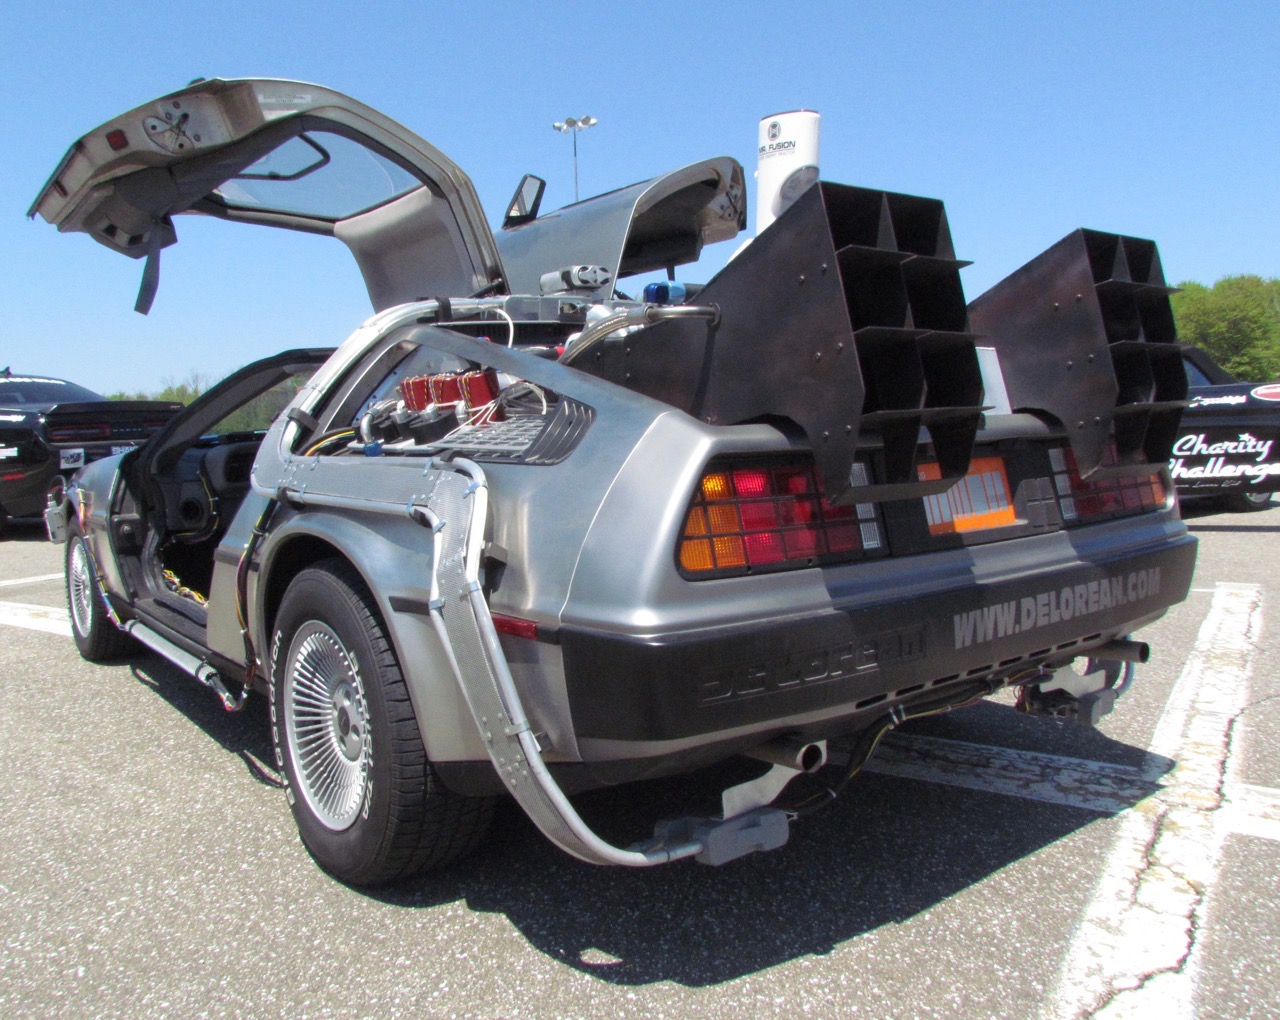 'Back to the Future' DeLorean was part of the ELK Charity Challenge caravan last week | Larry Edsall photos